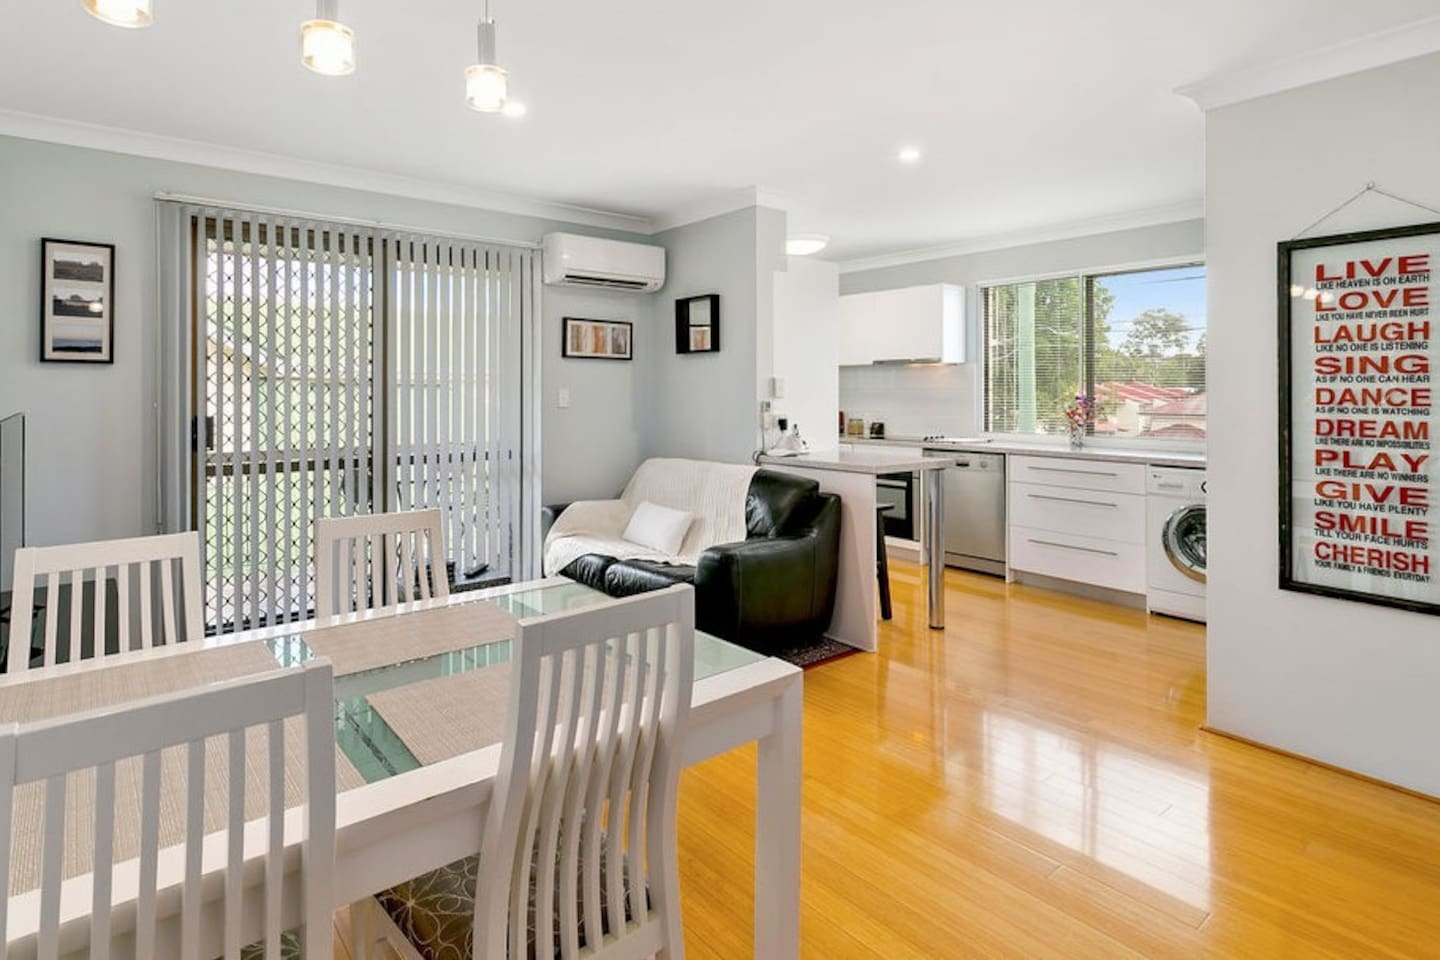 Feel at home in this stylish self-contained, 2-bedroom unit...and it's entirely yours to enjoy!  Enjoy reverse-cycle air-conditioning, free wireless internet, Netflix, local and national telephone calls, and parking in a single remote-control garage.